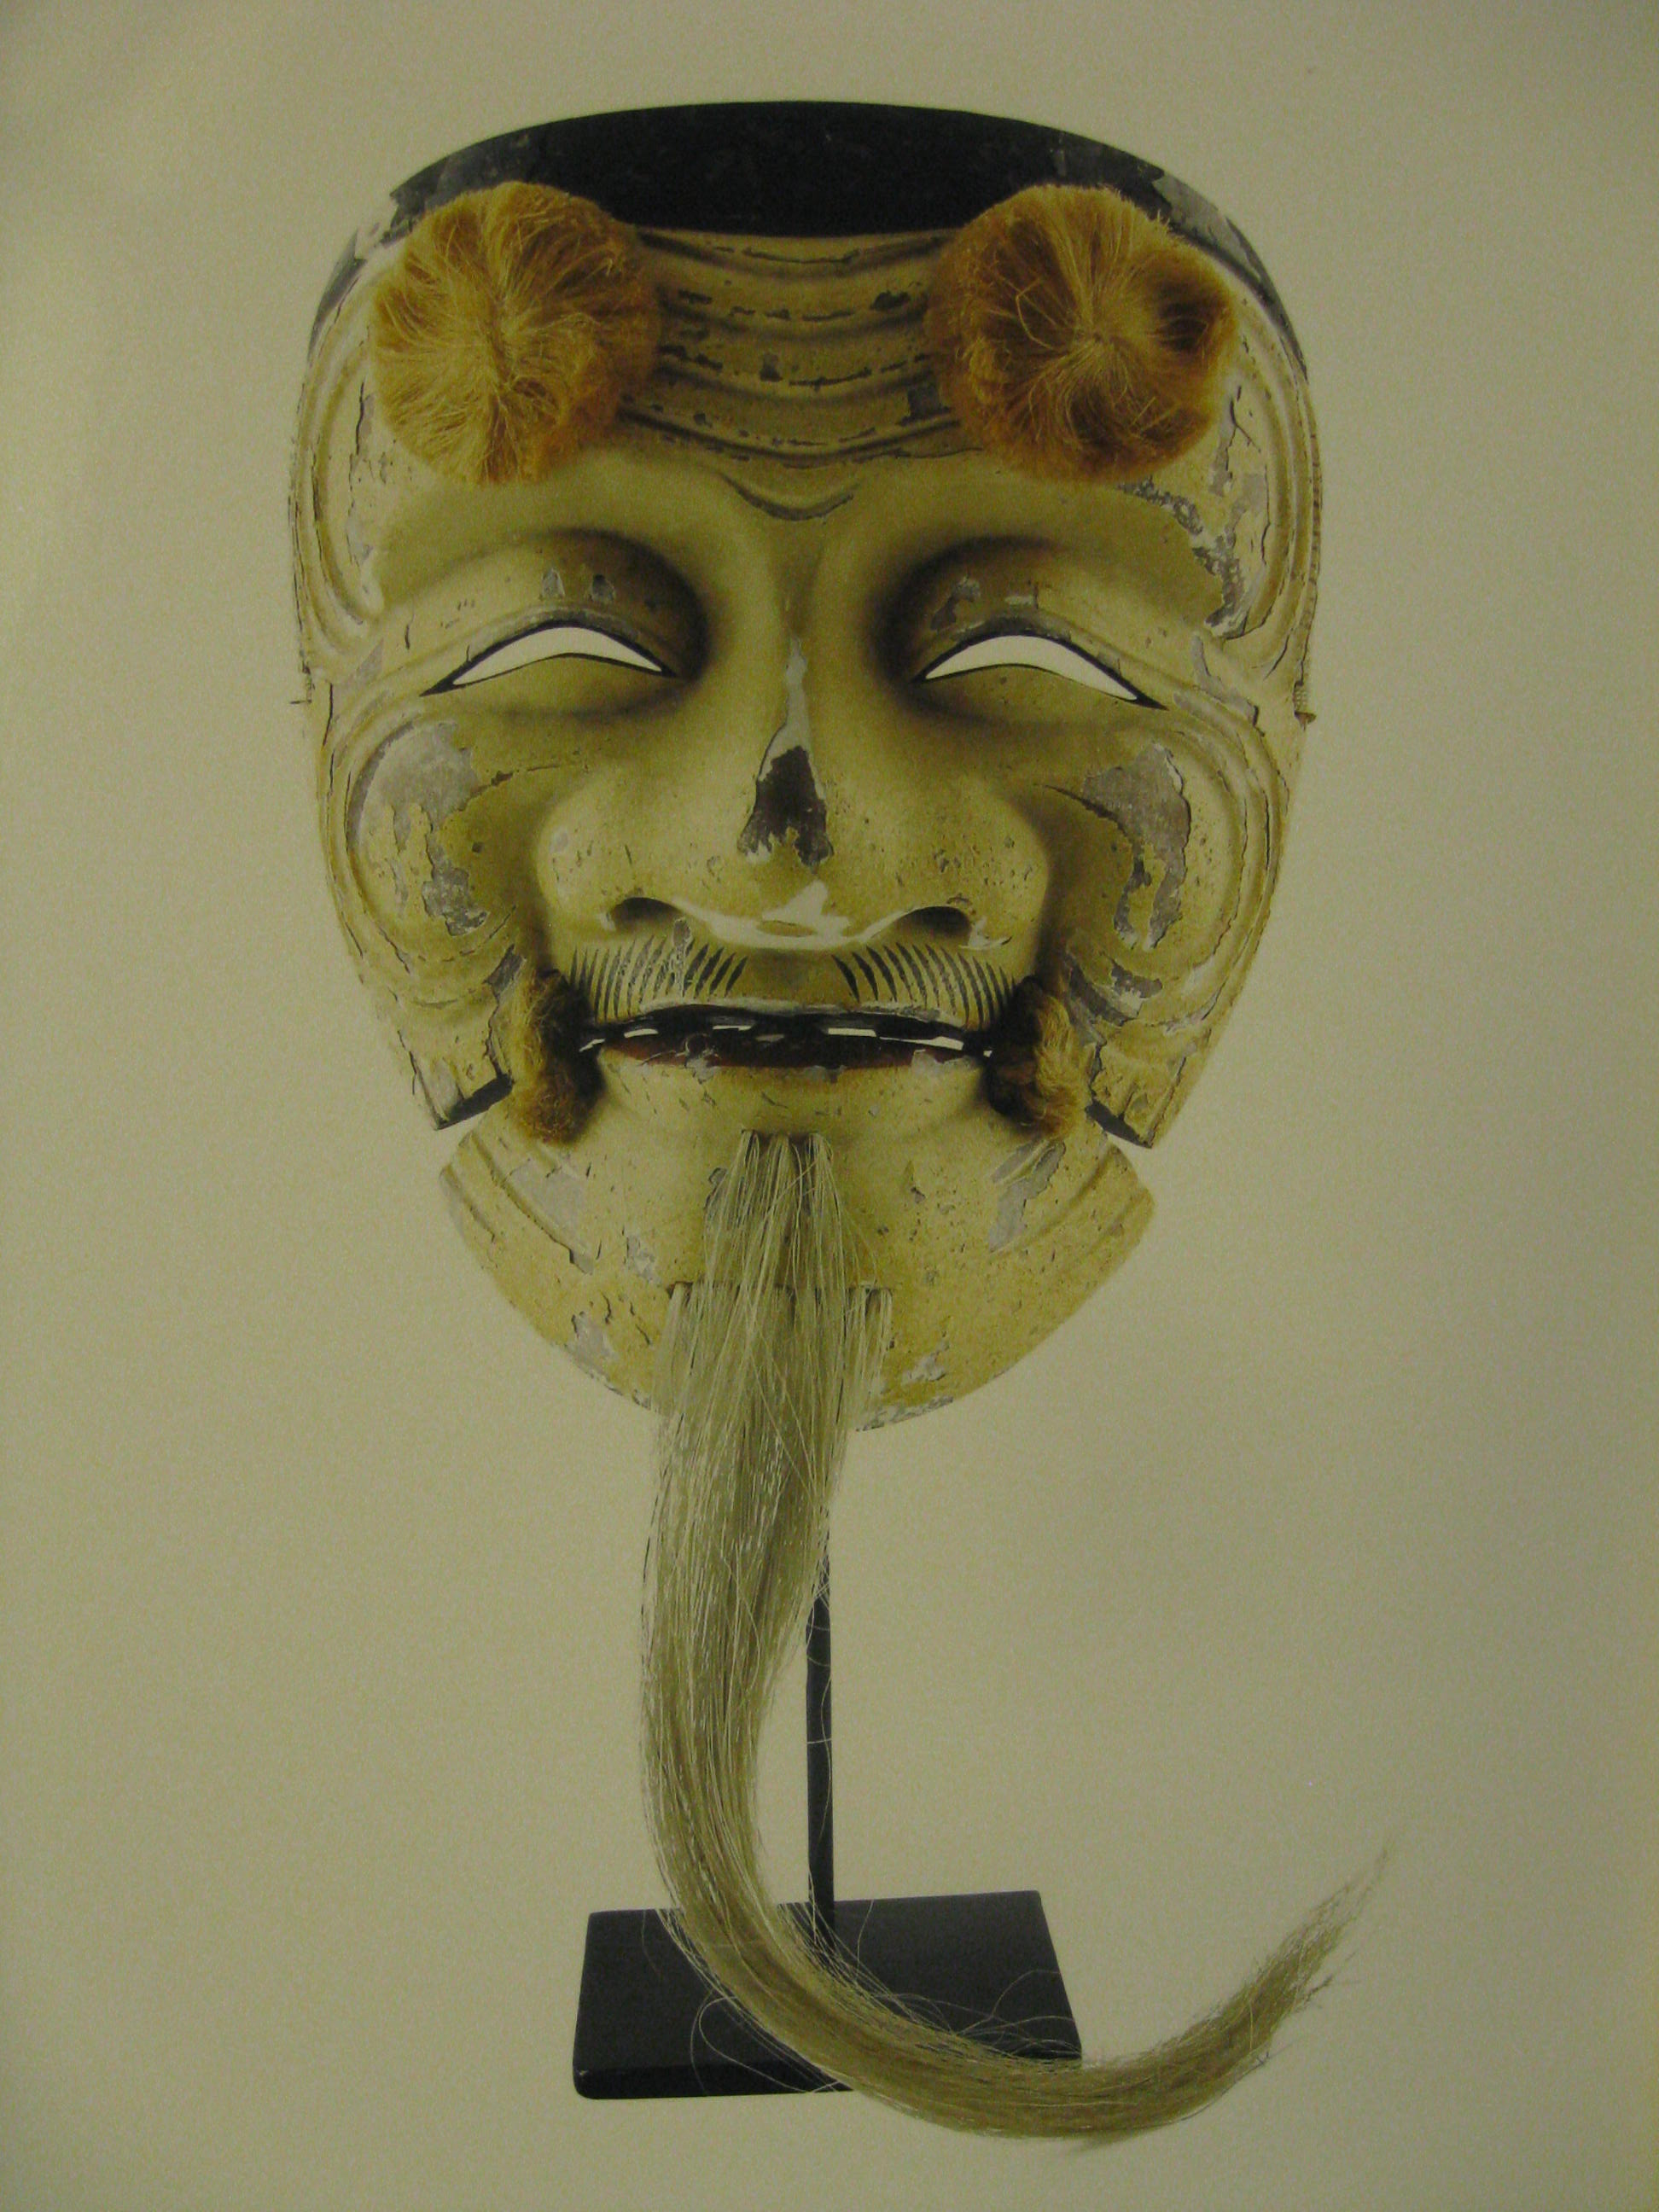 okina japanese noh mask character from the oldest japanese noh play